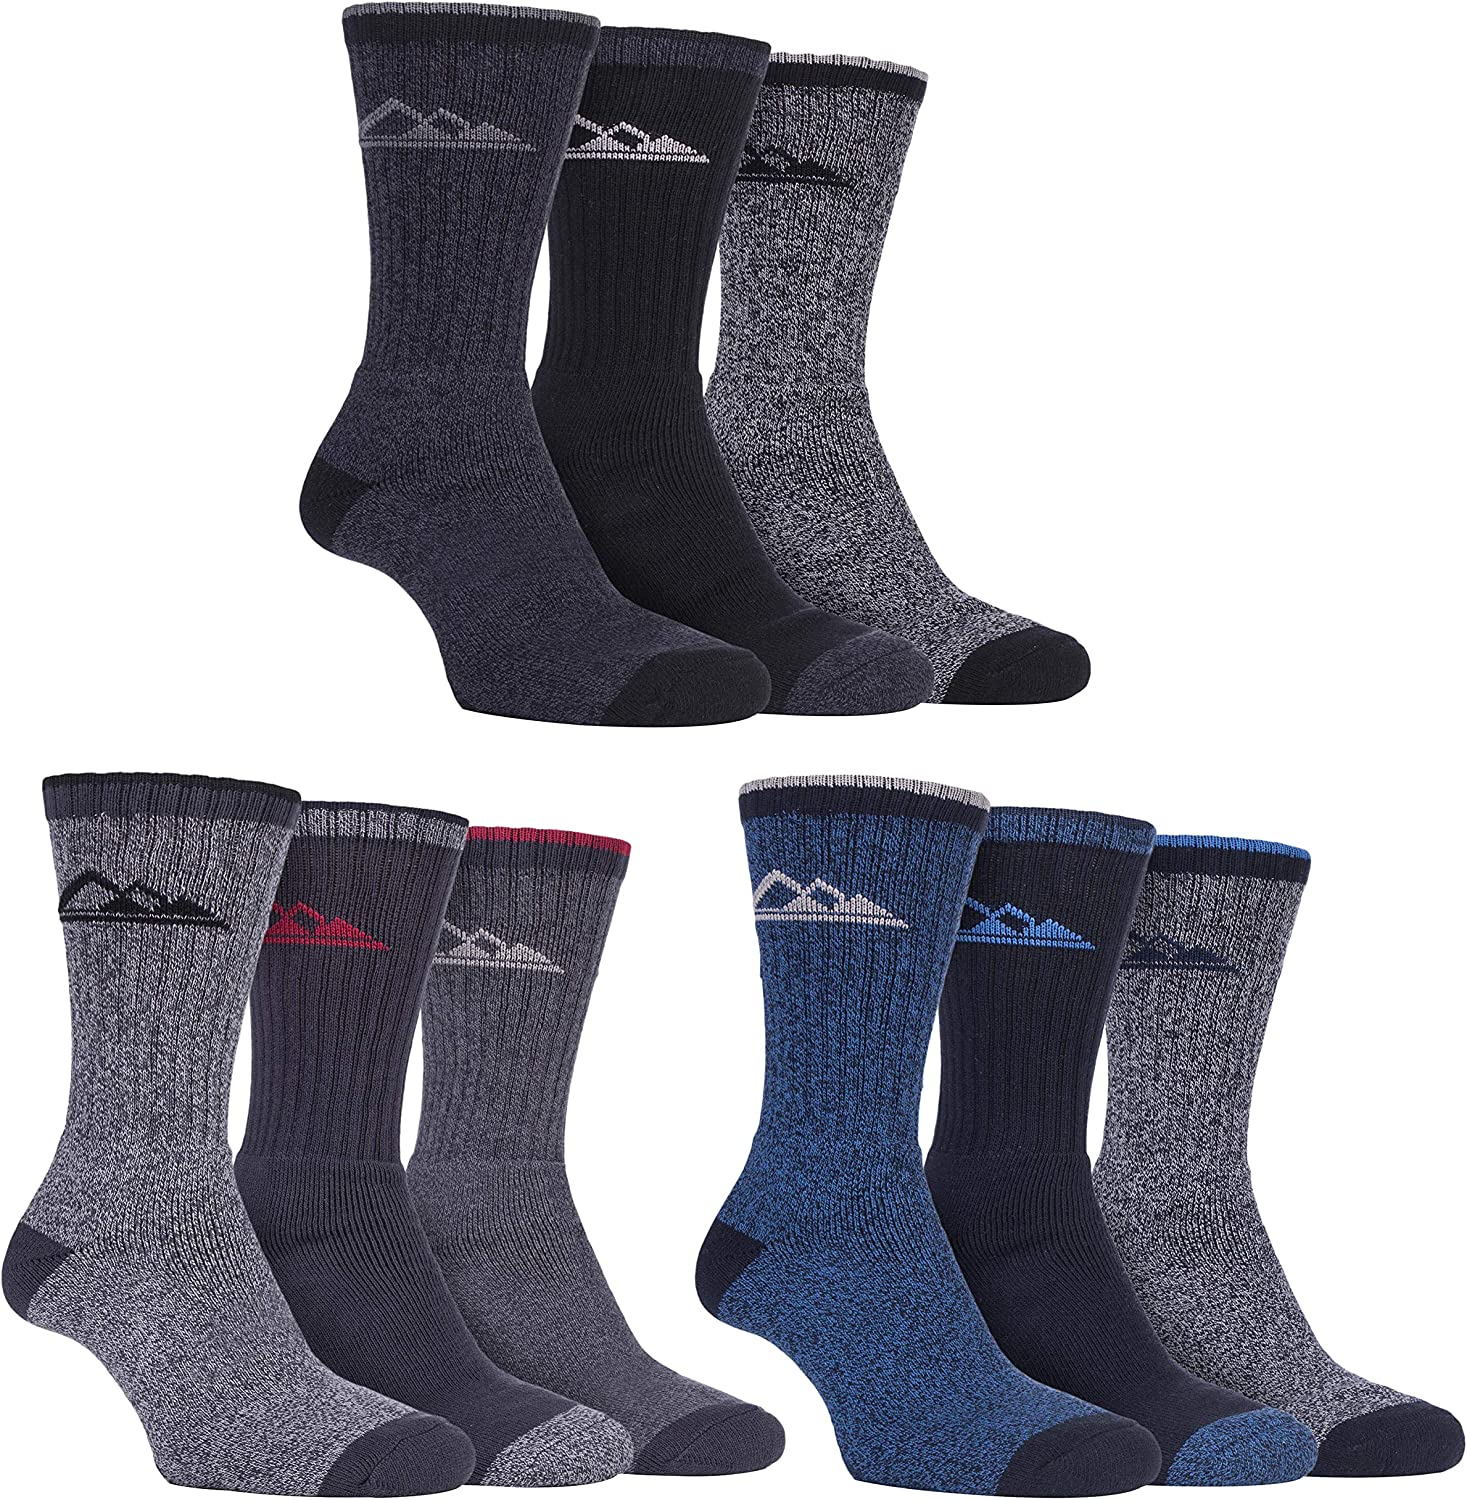 Storm Bloc - 3 Pack Mens Padded Sole Anti Blister Lightweight Breathable Cotton Walking Hiking Socks for Summer Sbms032cha